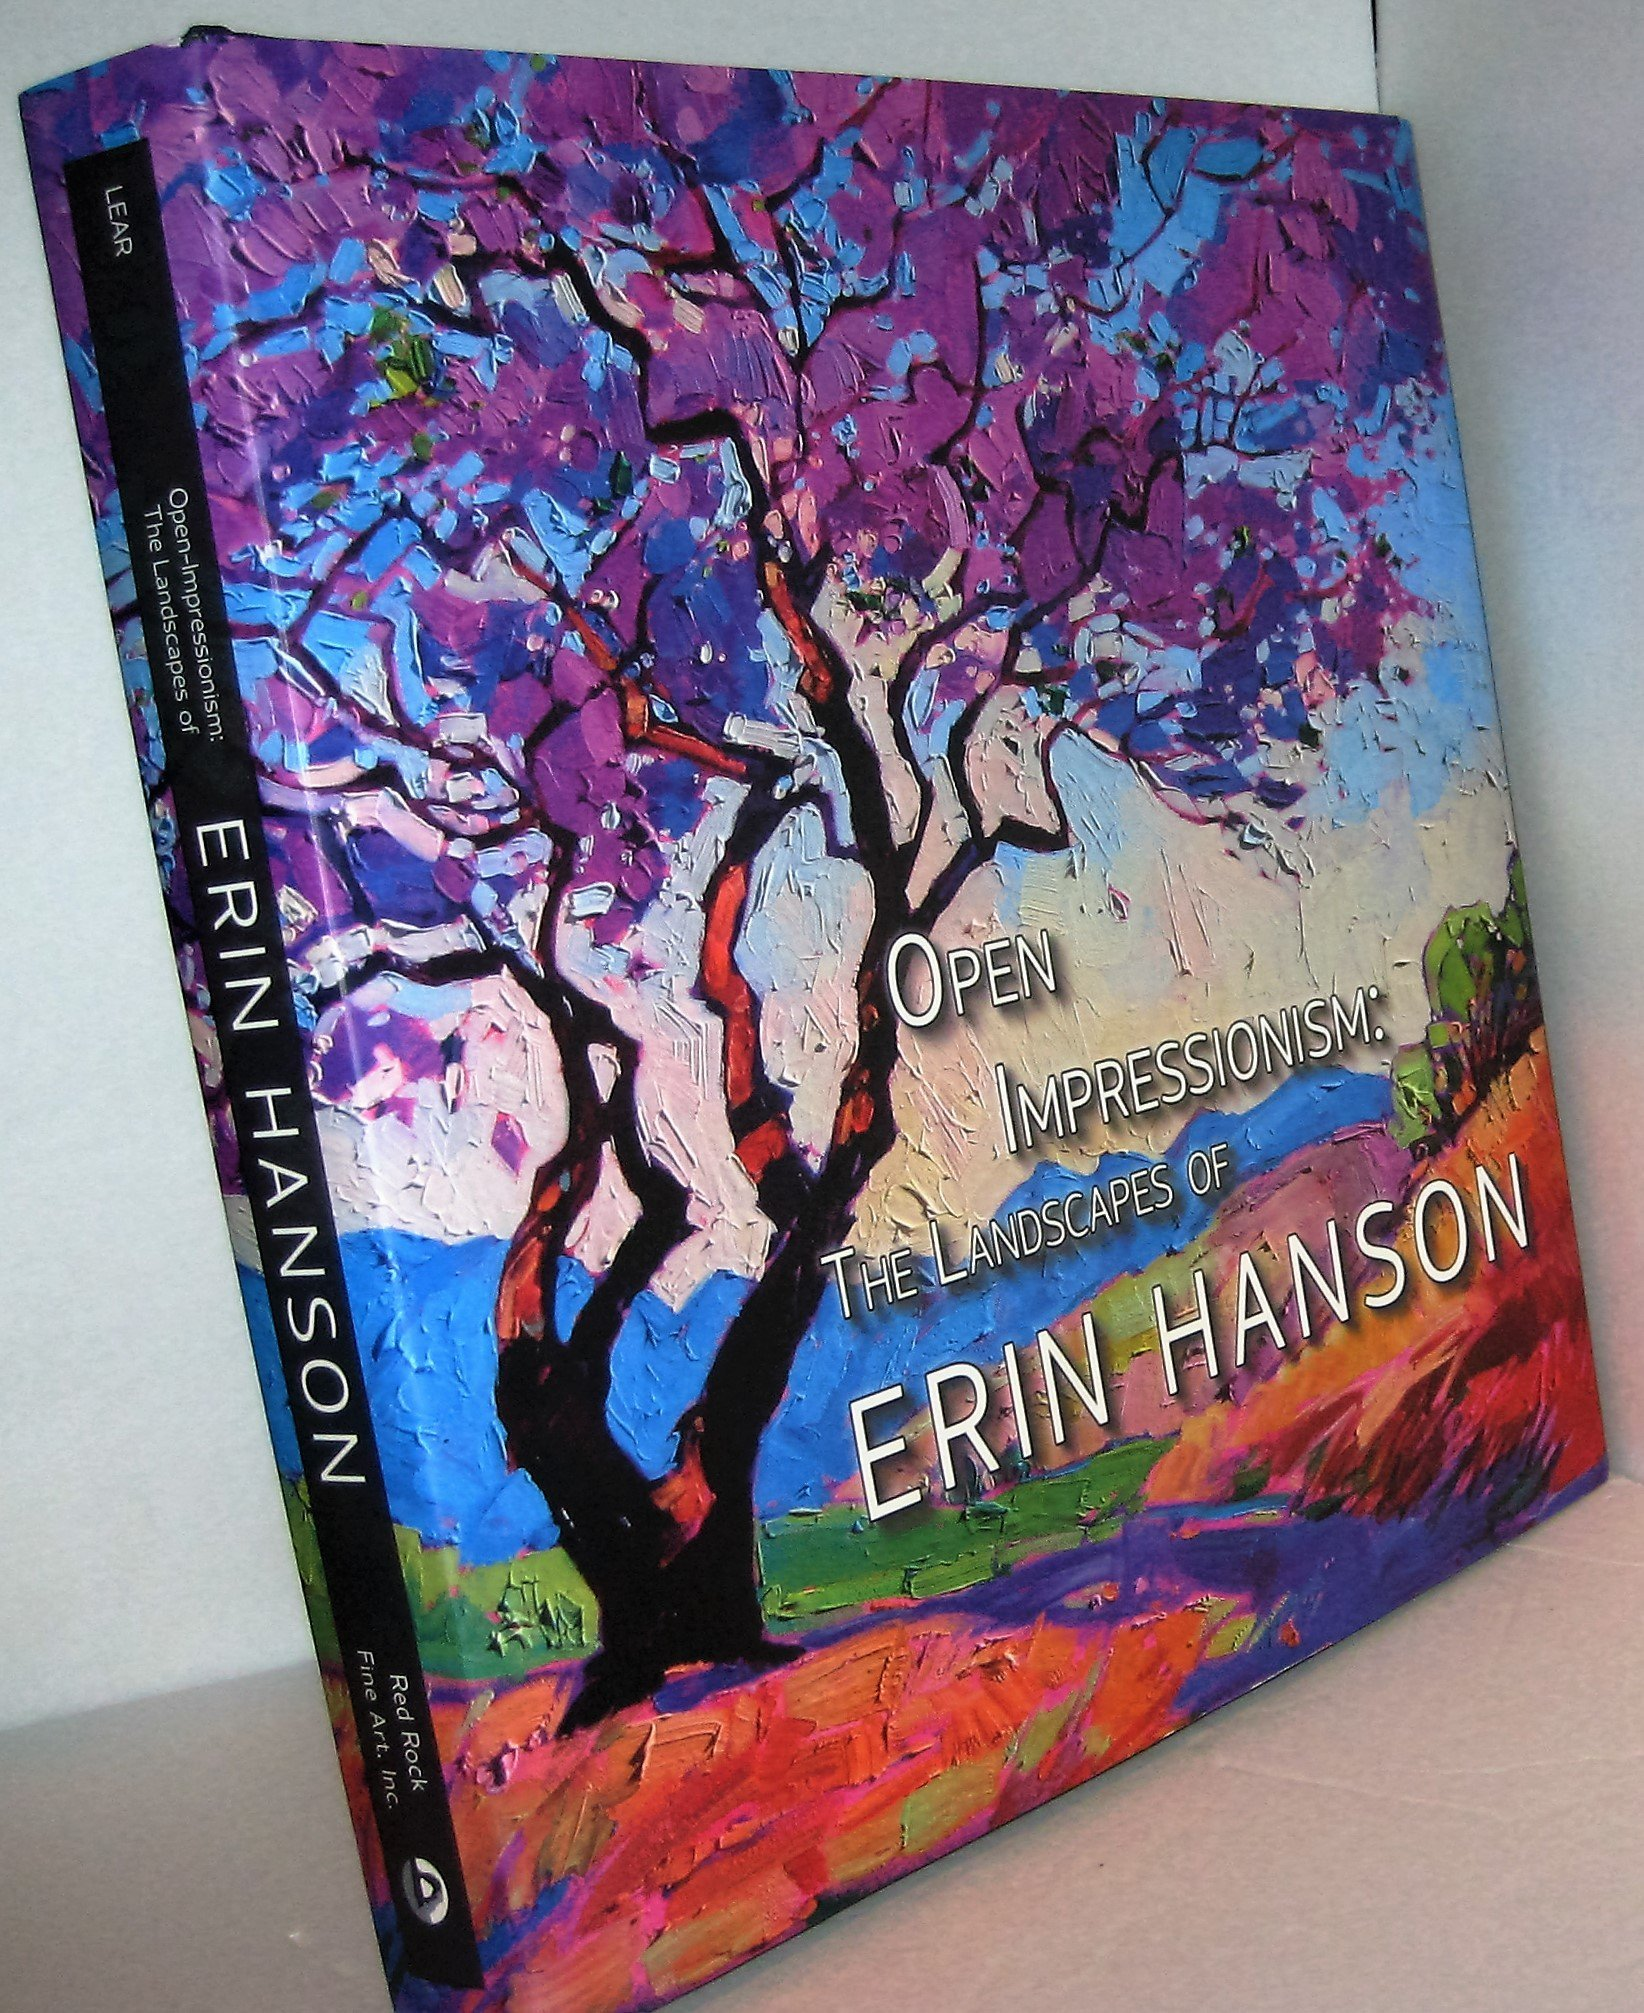 Open Impressionism The Landscapes of Erin Hanson Hardcover